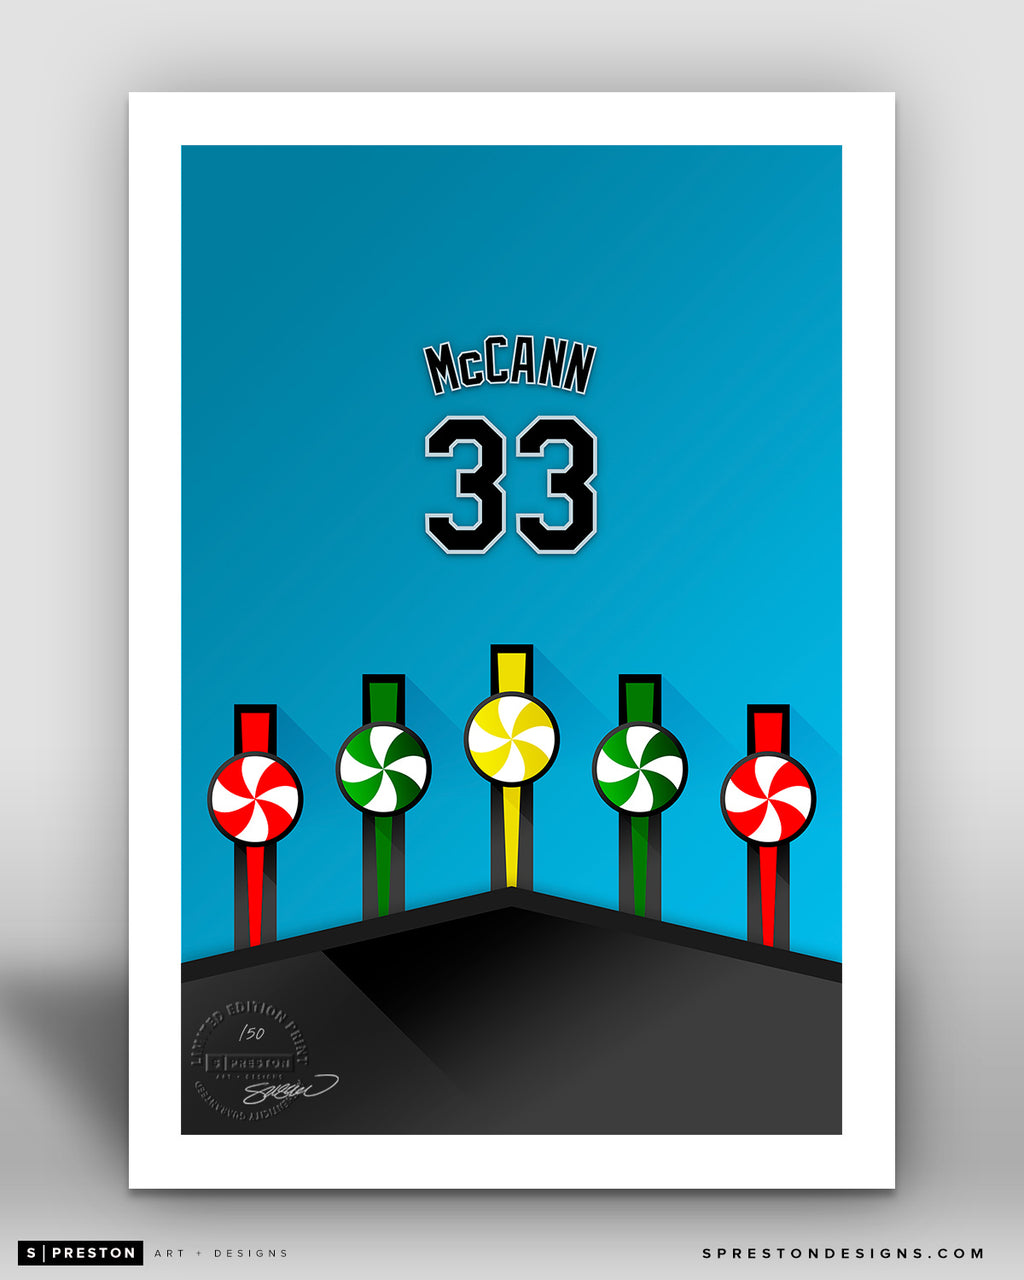 Minimalist Guaranteed Rate Field - Player Series - James McCann - Chicago White Sox - S. Preston